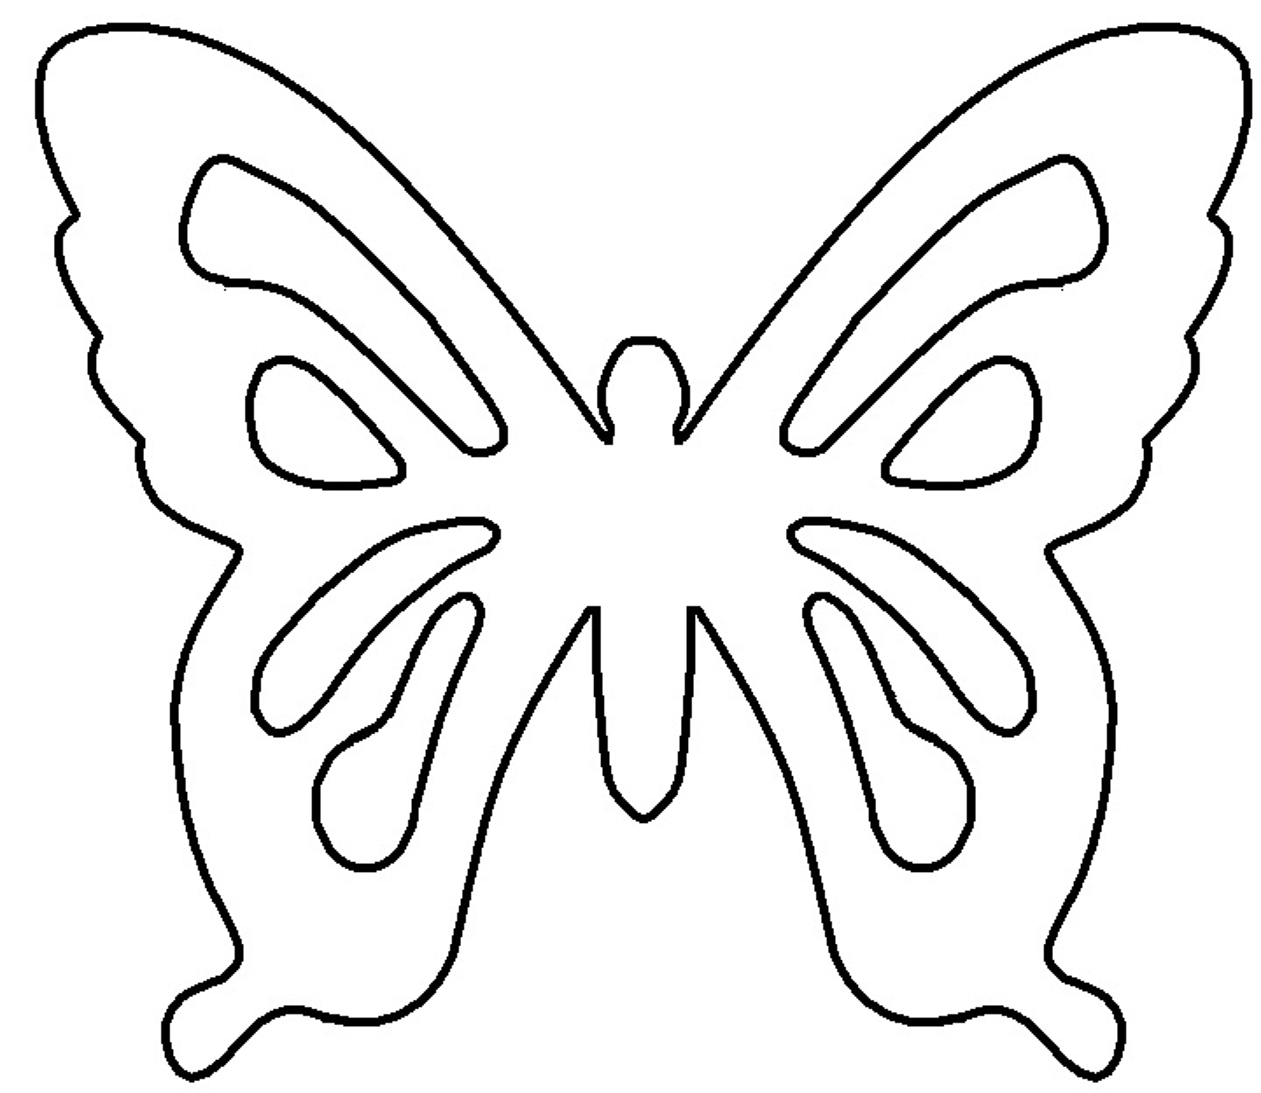 Free Butterfly Template, Download Free Clip Art, Free Clip Art On - Free Printable Butterfly Cutouts